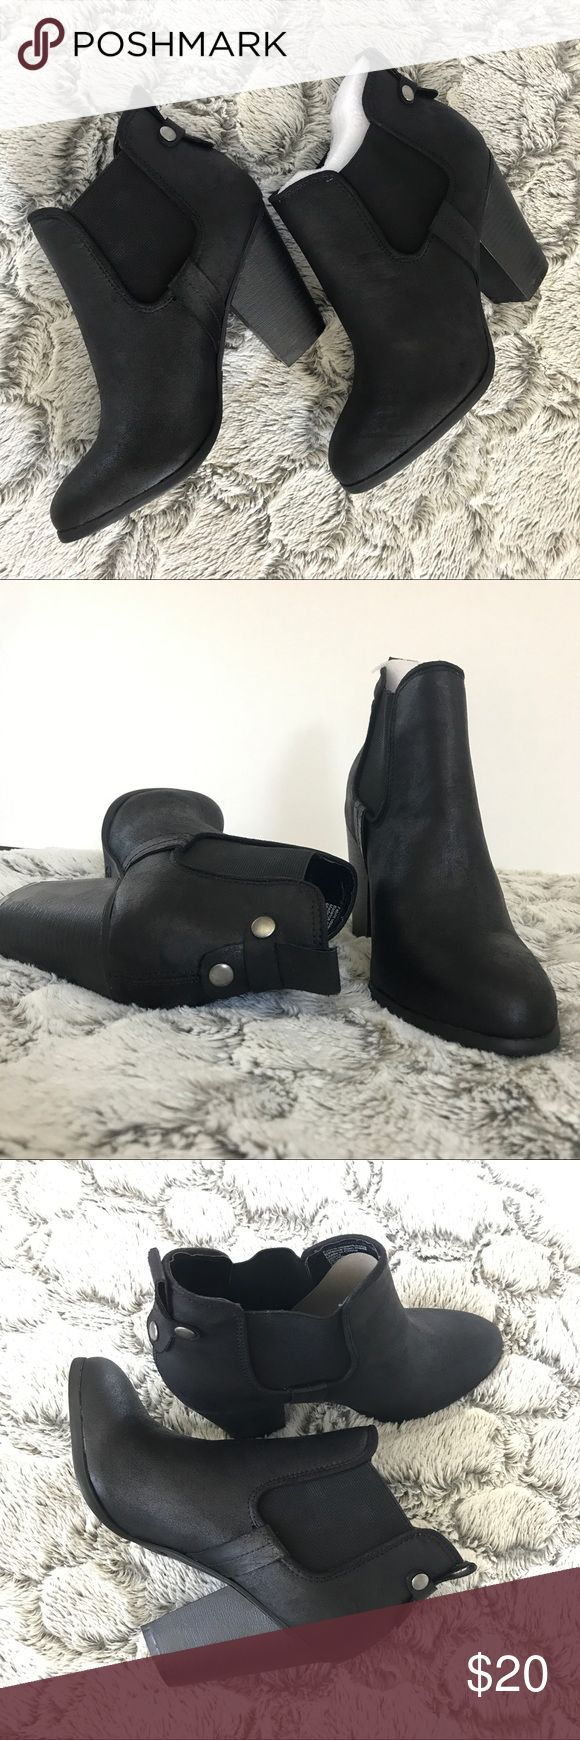 Carlos Santana Boots💯❤️🛍 NWT black booties, great for a casual style or a night out! Size: 9 Carlos Santana Shoes Ankle Boots & Booties